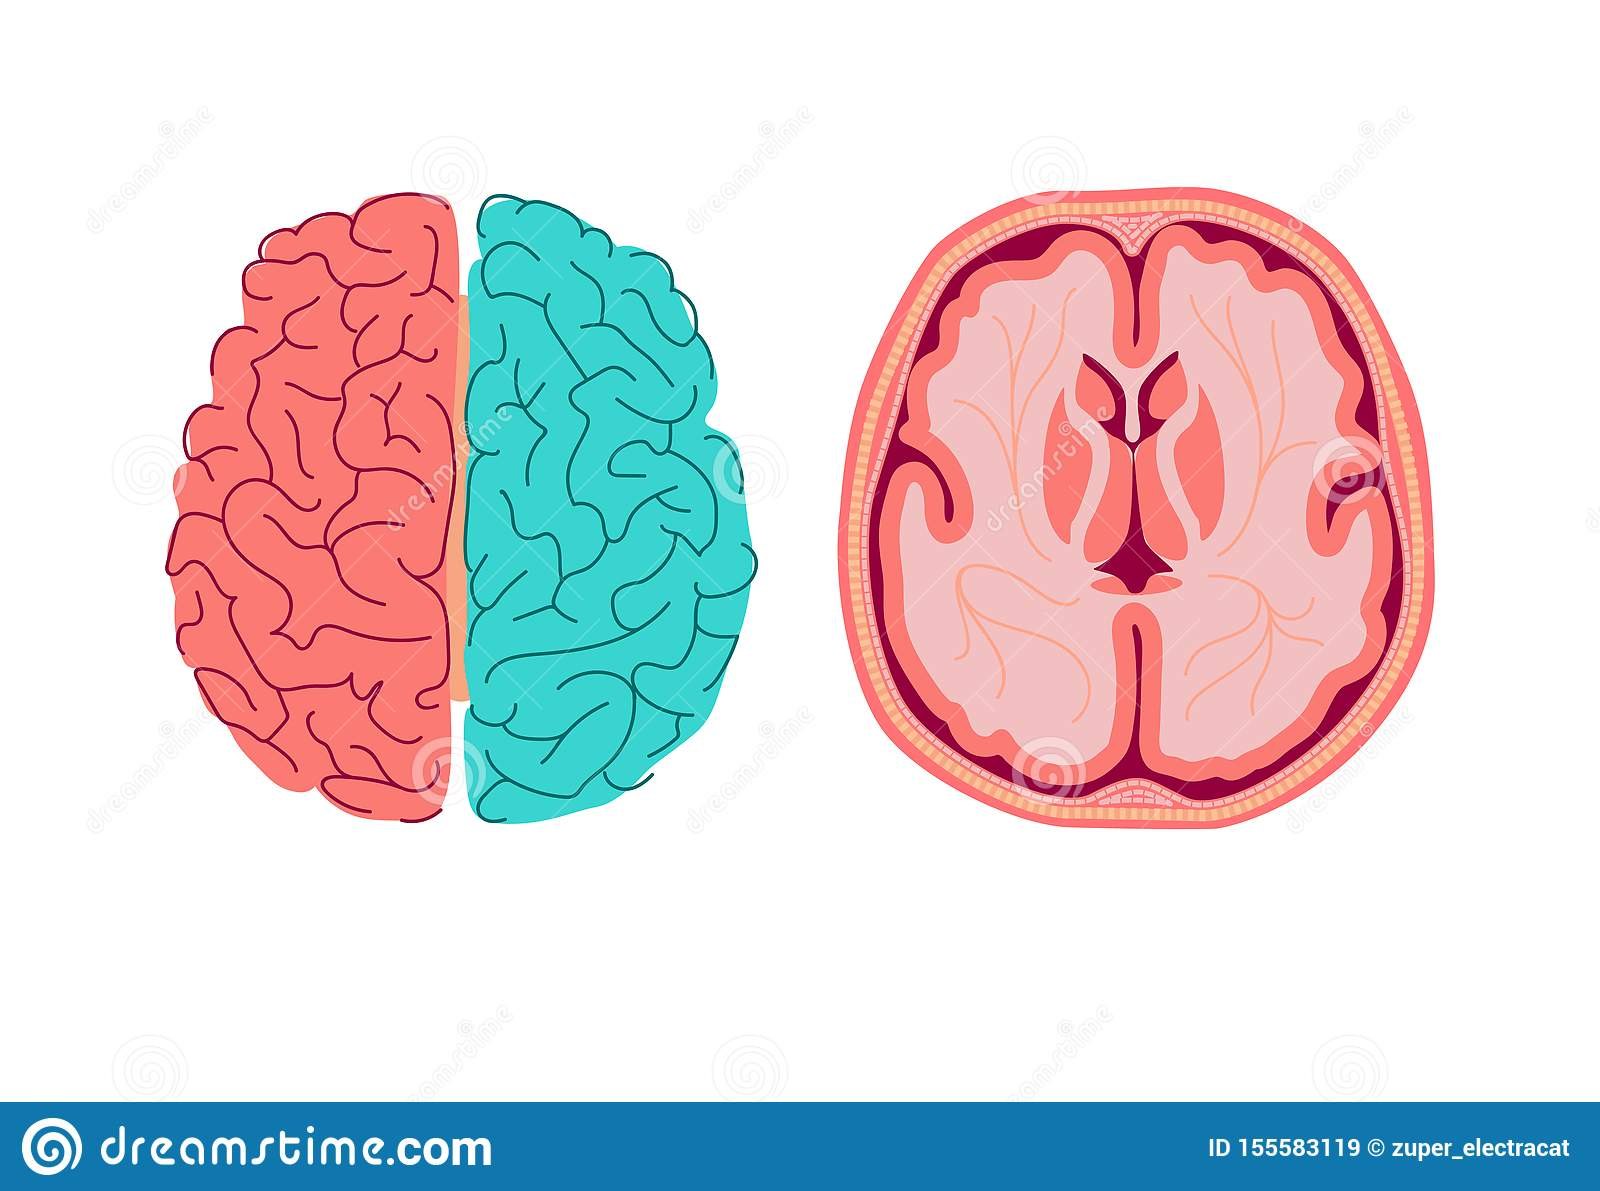 Anatomy Of Human Brain. Medical Diagram Of The Structure ...